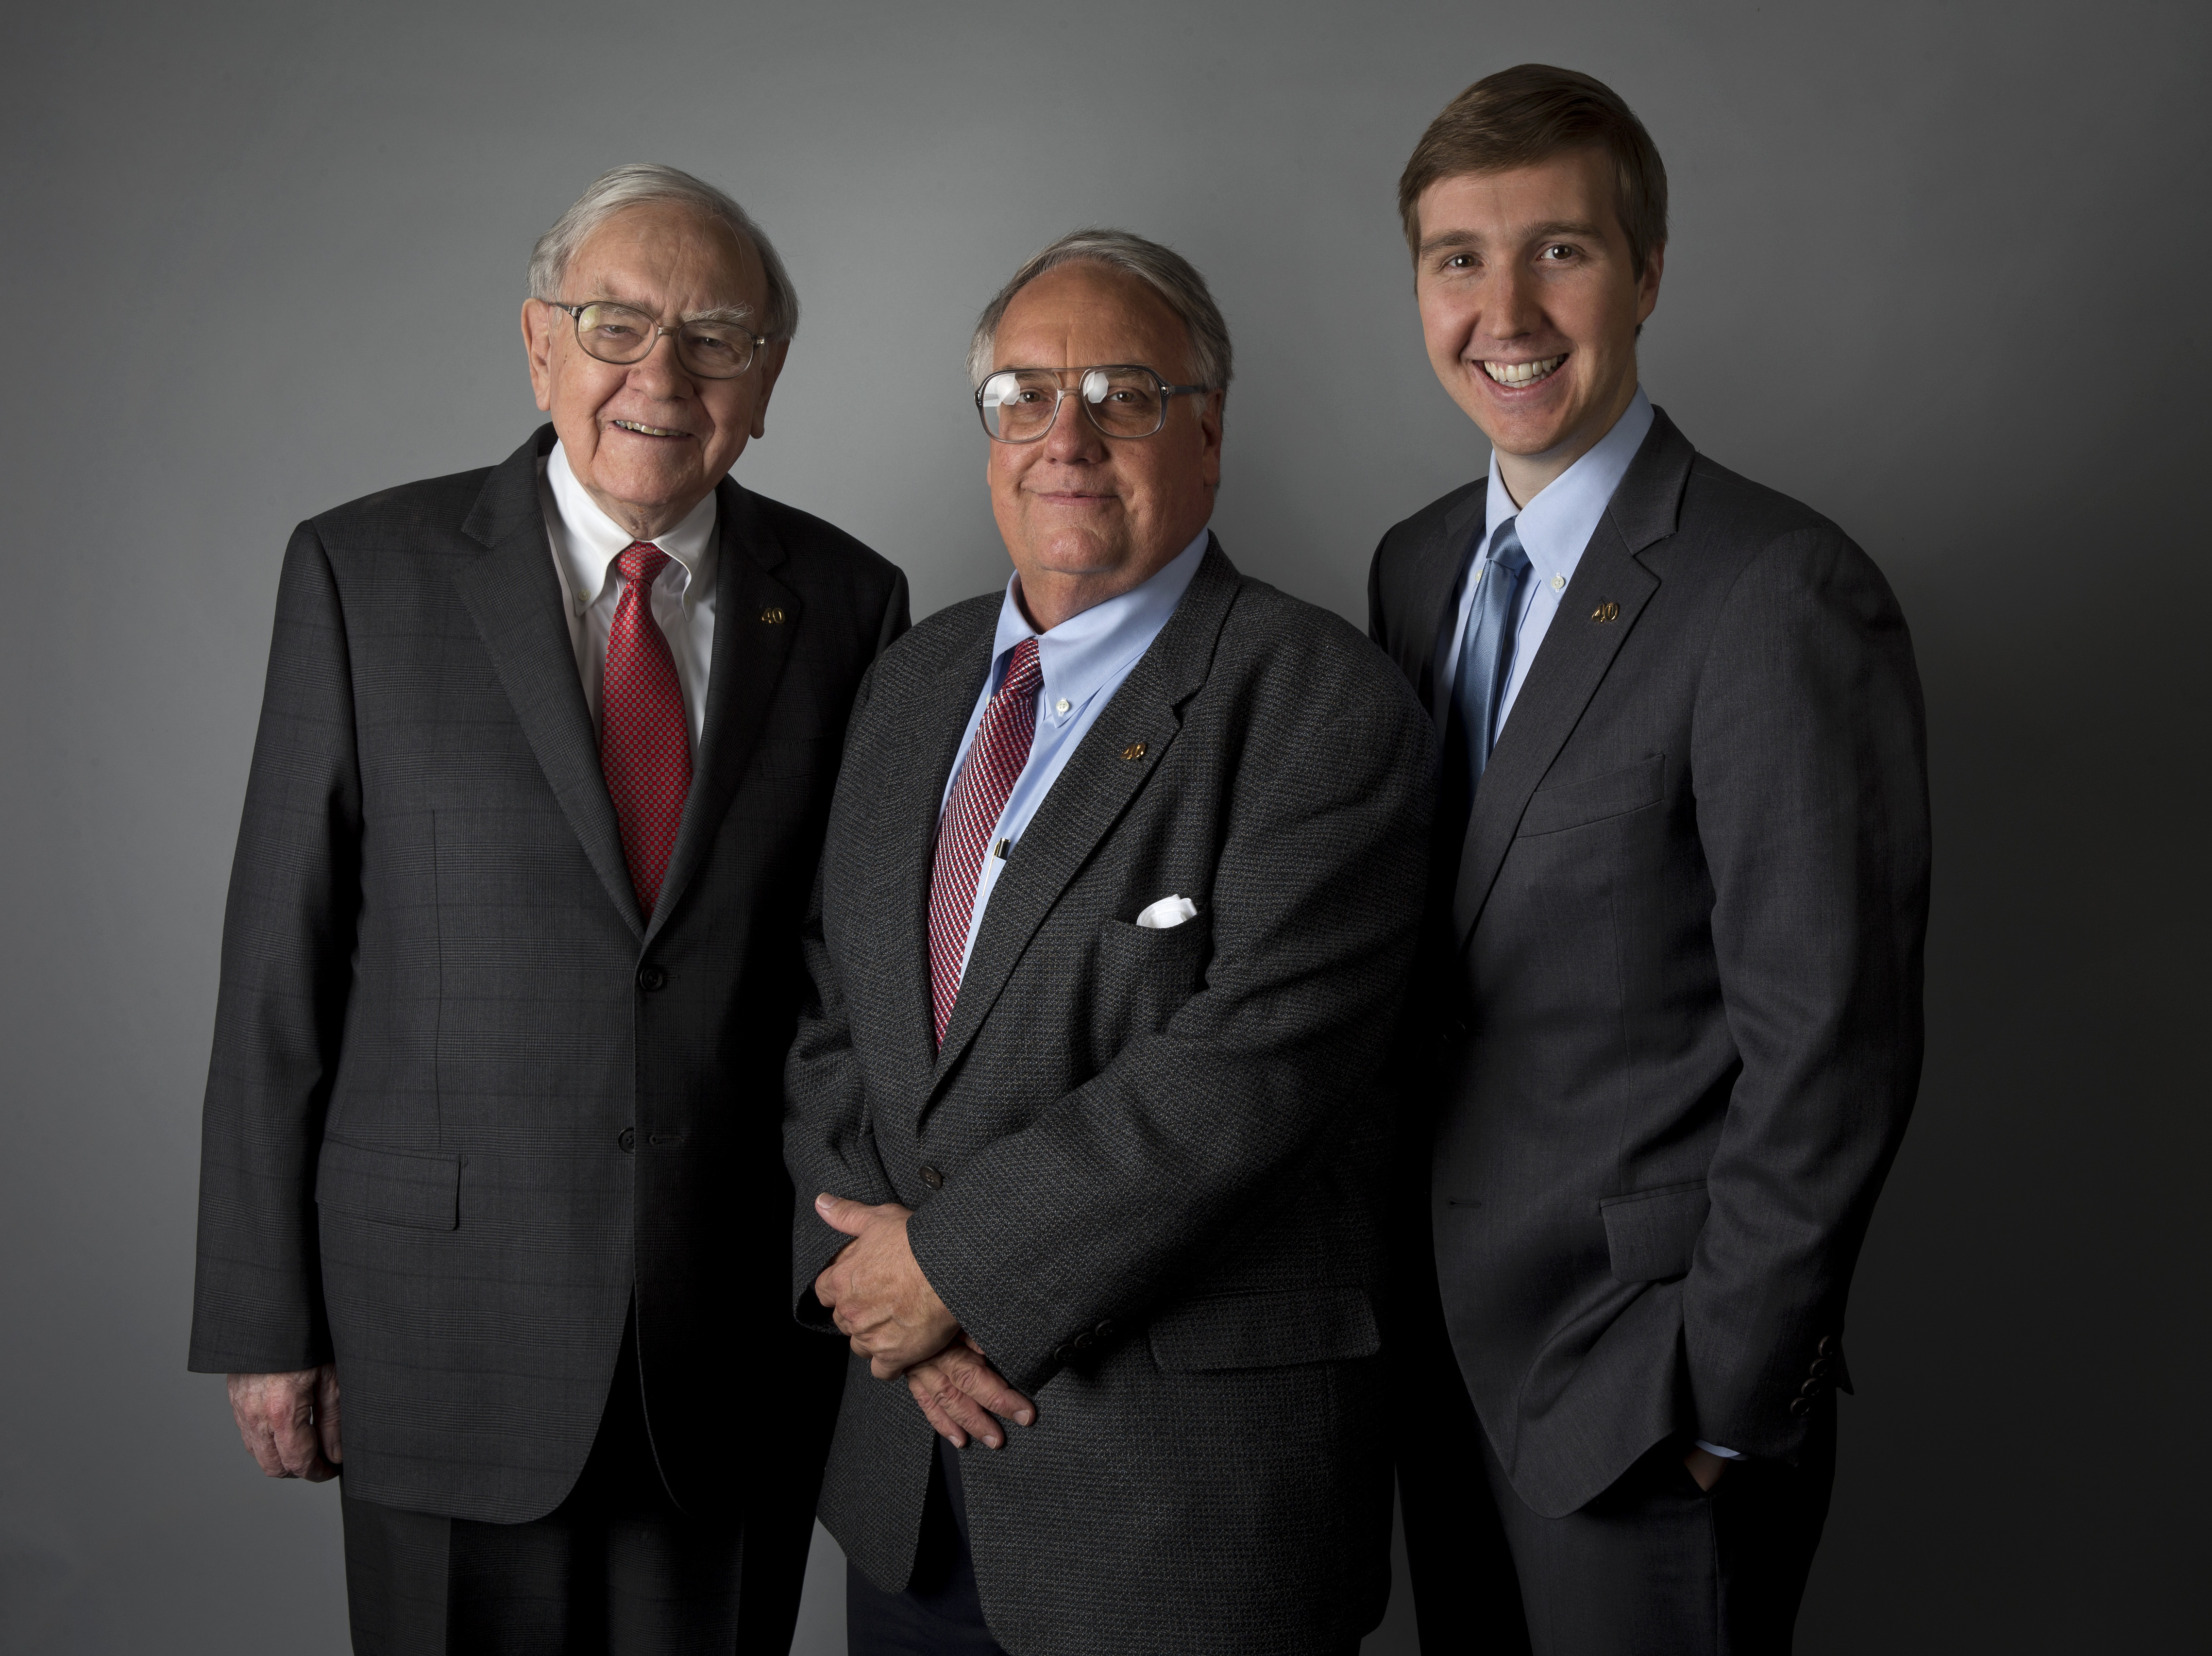 Buffett Family Puts Money Where Their Mouth Is: Food Security